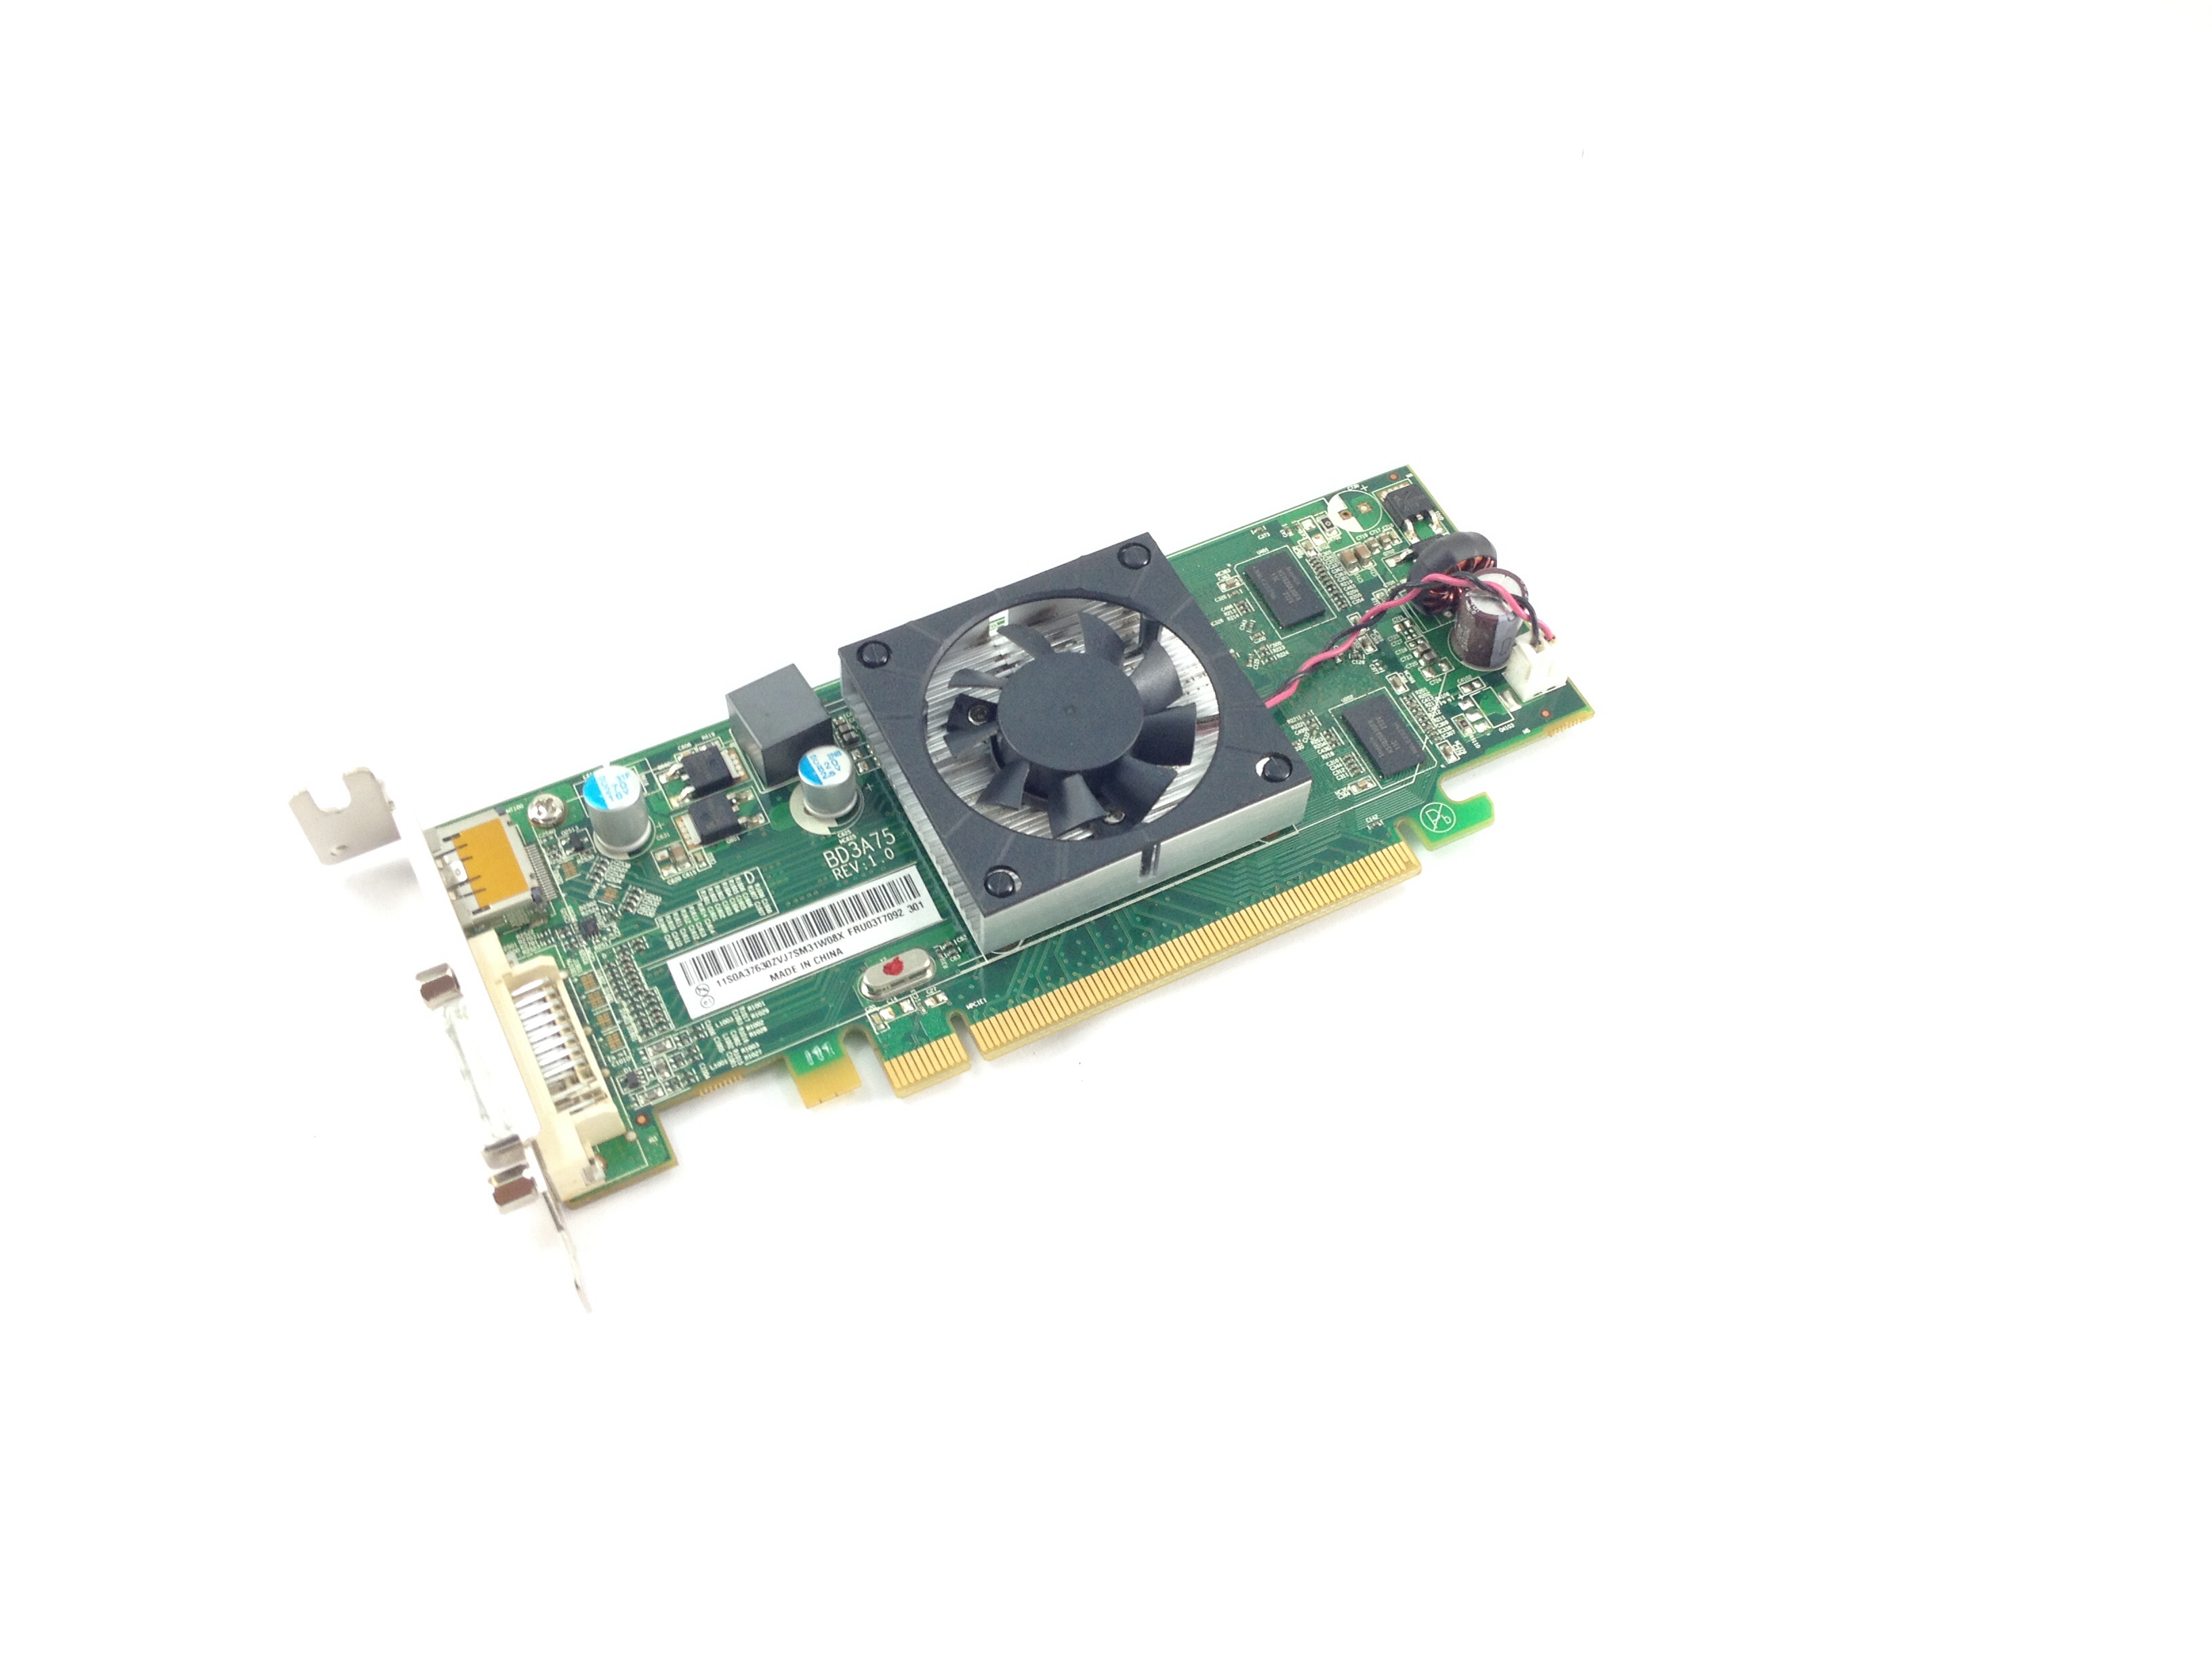 IBM Lenovo Thinkcenter AMD Radeon Hd7450 1GB Pci-E Graphics Card (HD 7450 )